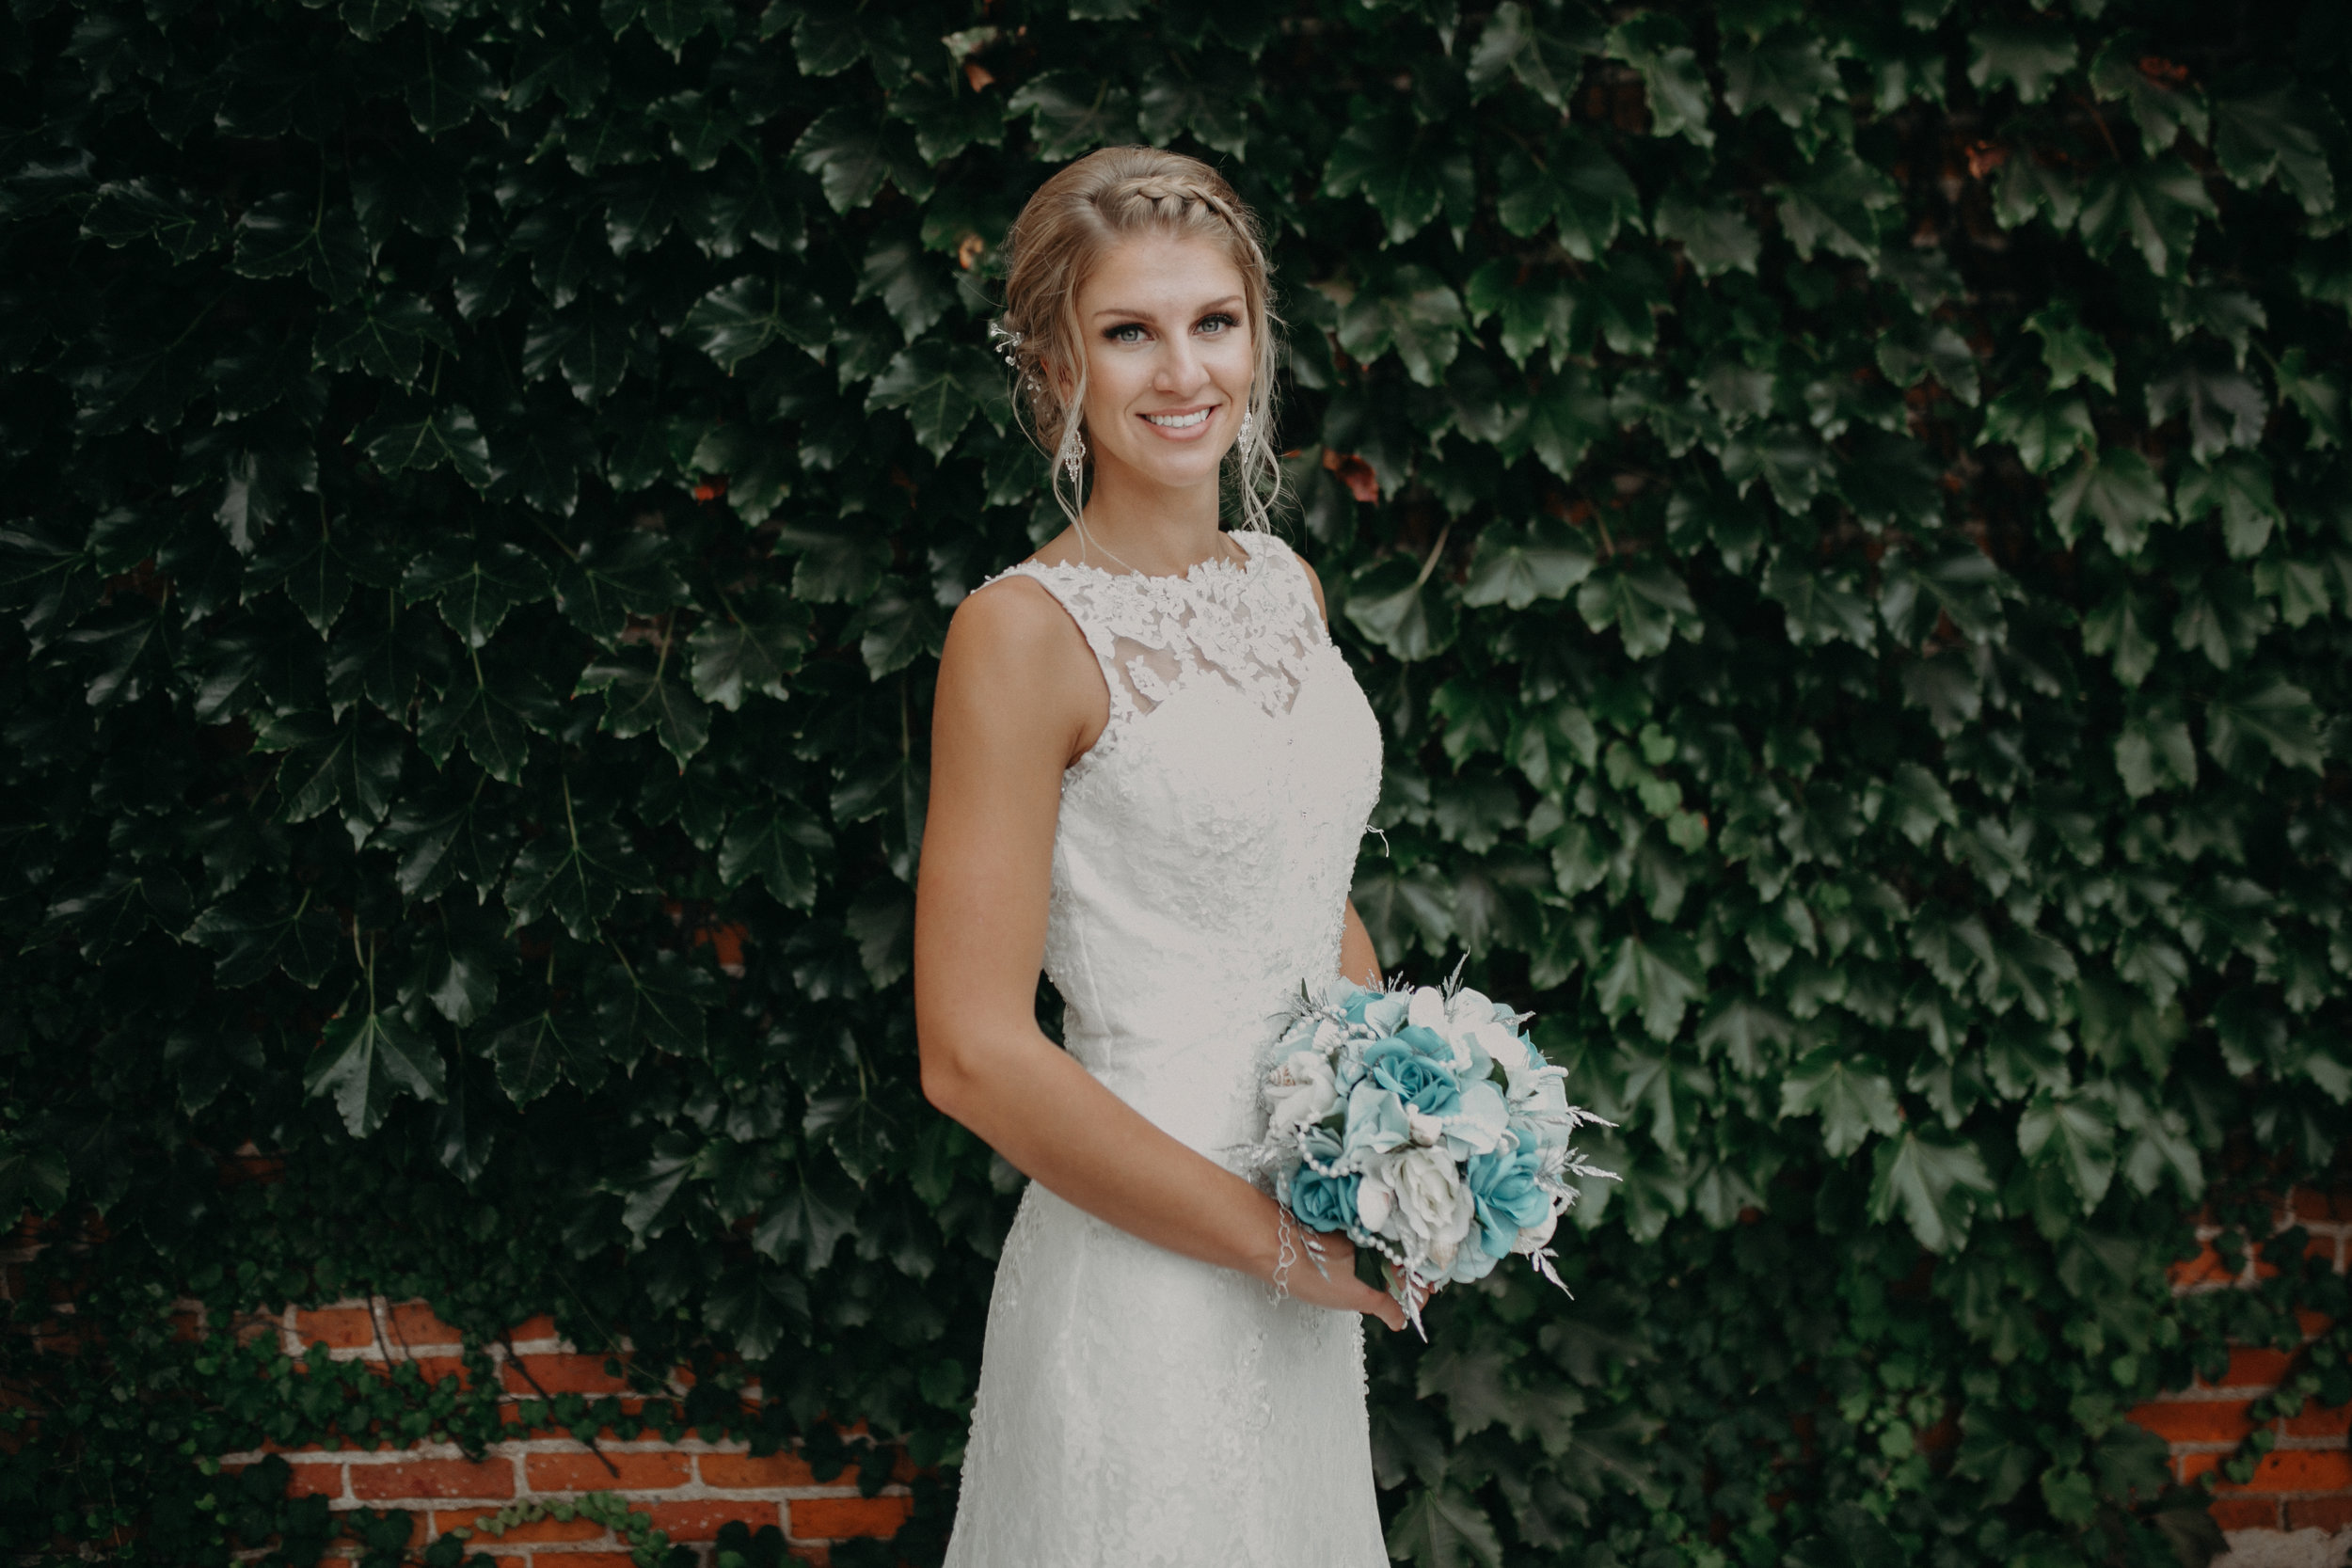 Andrea Wagner Photography with Tiffany Lenz at her wedding in Marshfield WI by Thomas House